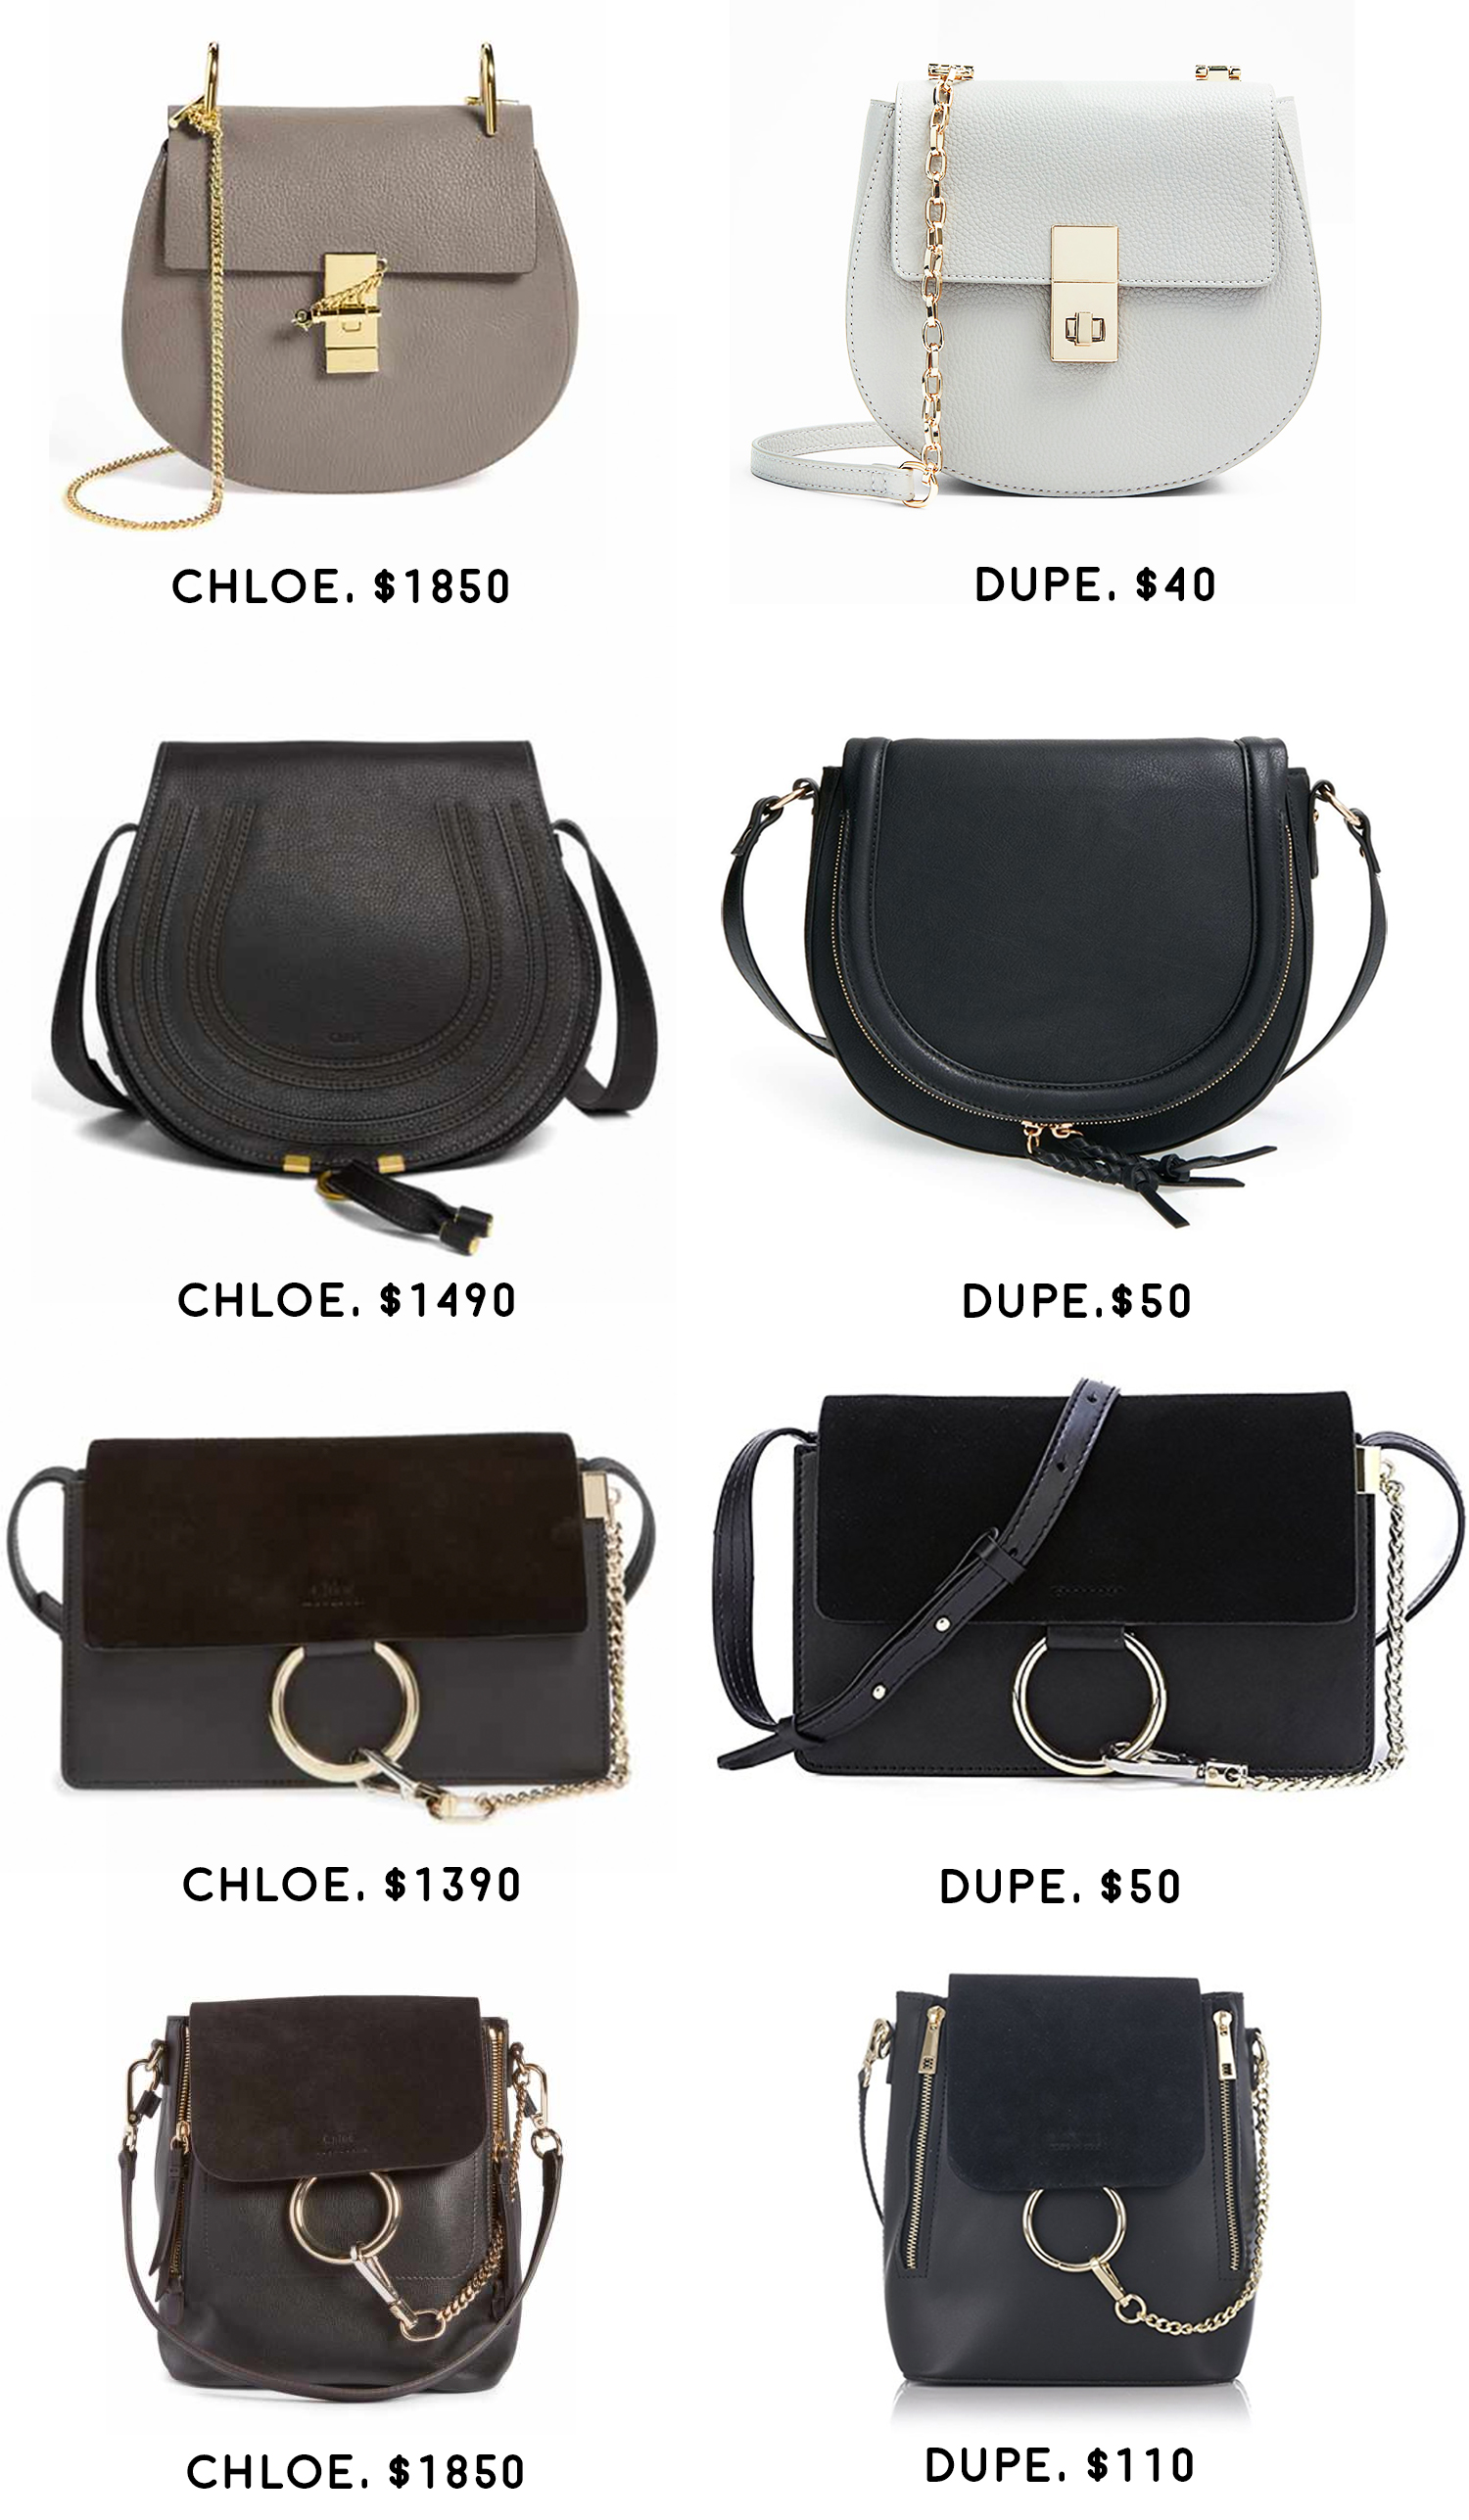 The Best Chloe Look Alike Bags (And Where to Find Them), Best Chloe designer dupe bags, 8 Chloe bag replicas that look just like the real deal by fashion blogger Stephanie Ziajka from Diary of a Debutante, Chloe marcie dupe bag, Chloe Faye dupe bag, Chloe Nile dupe bag